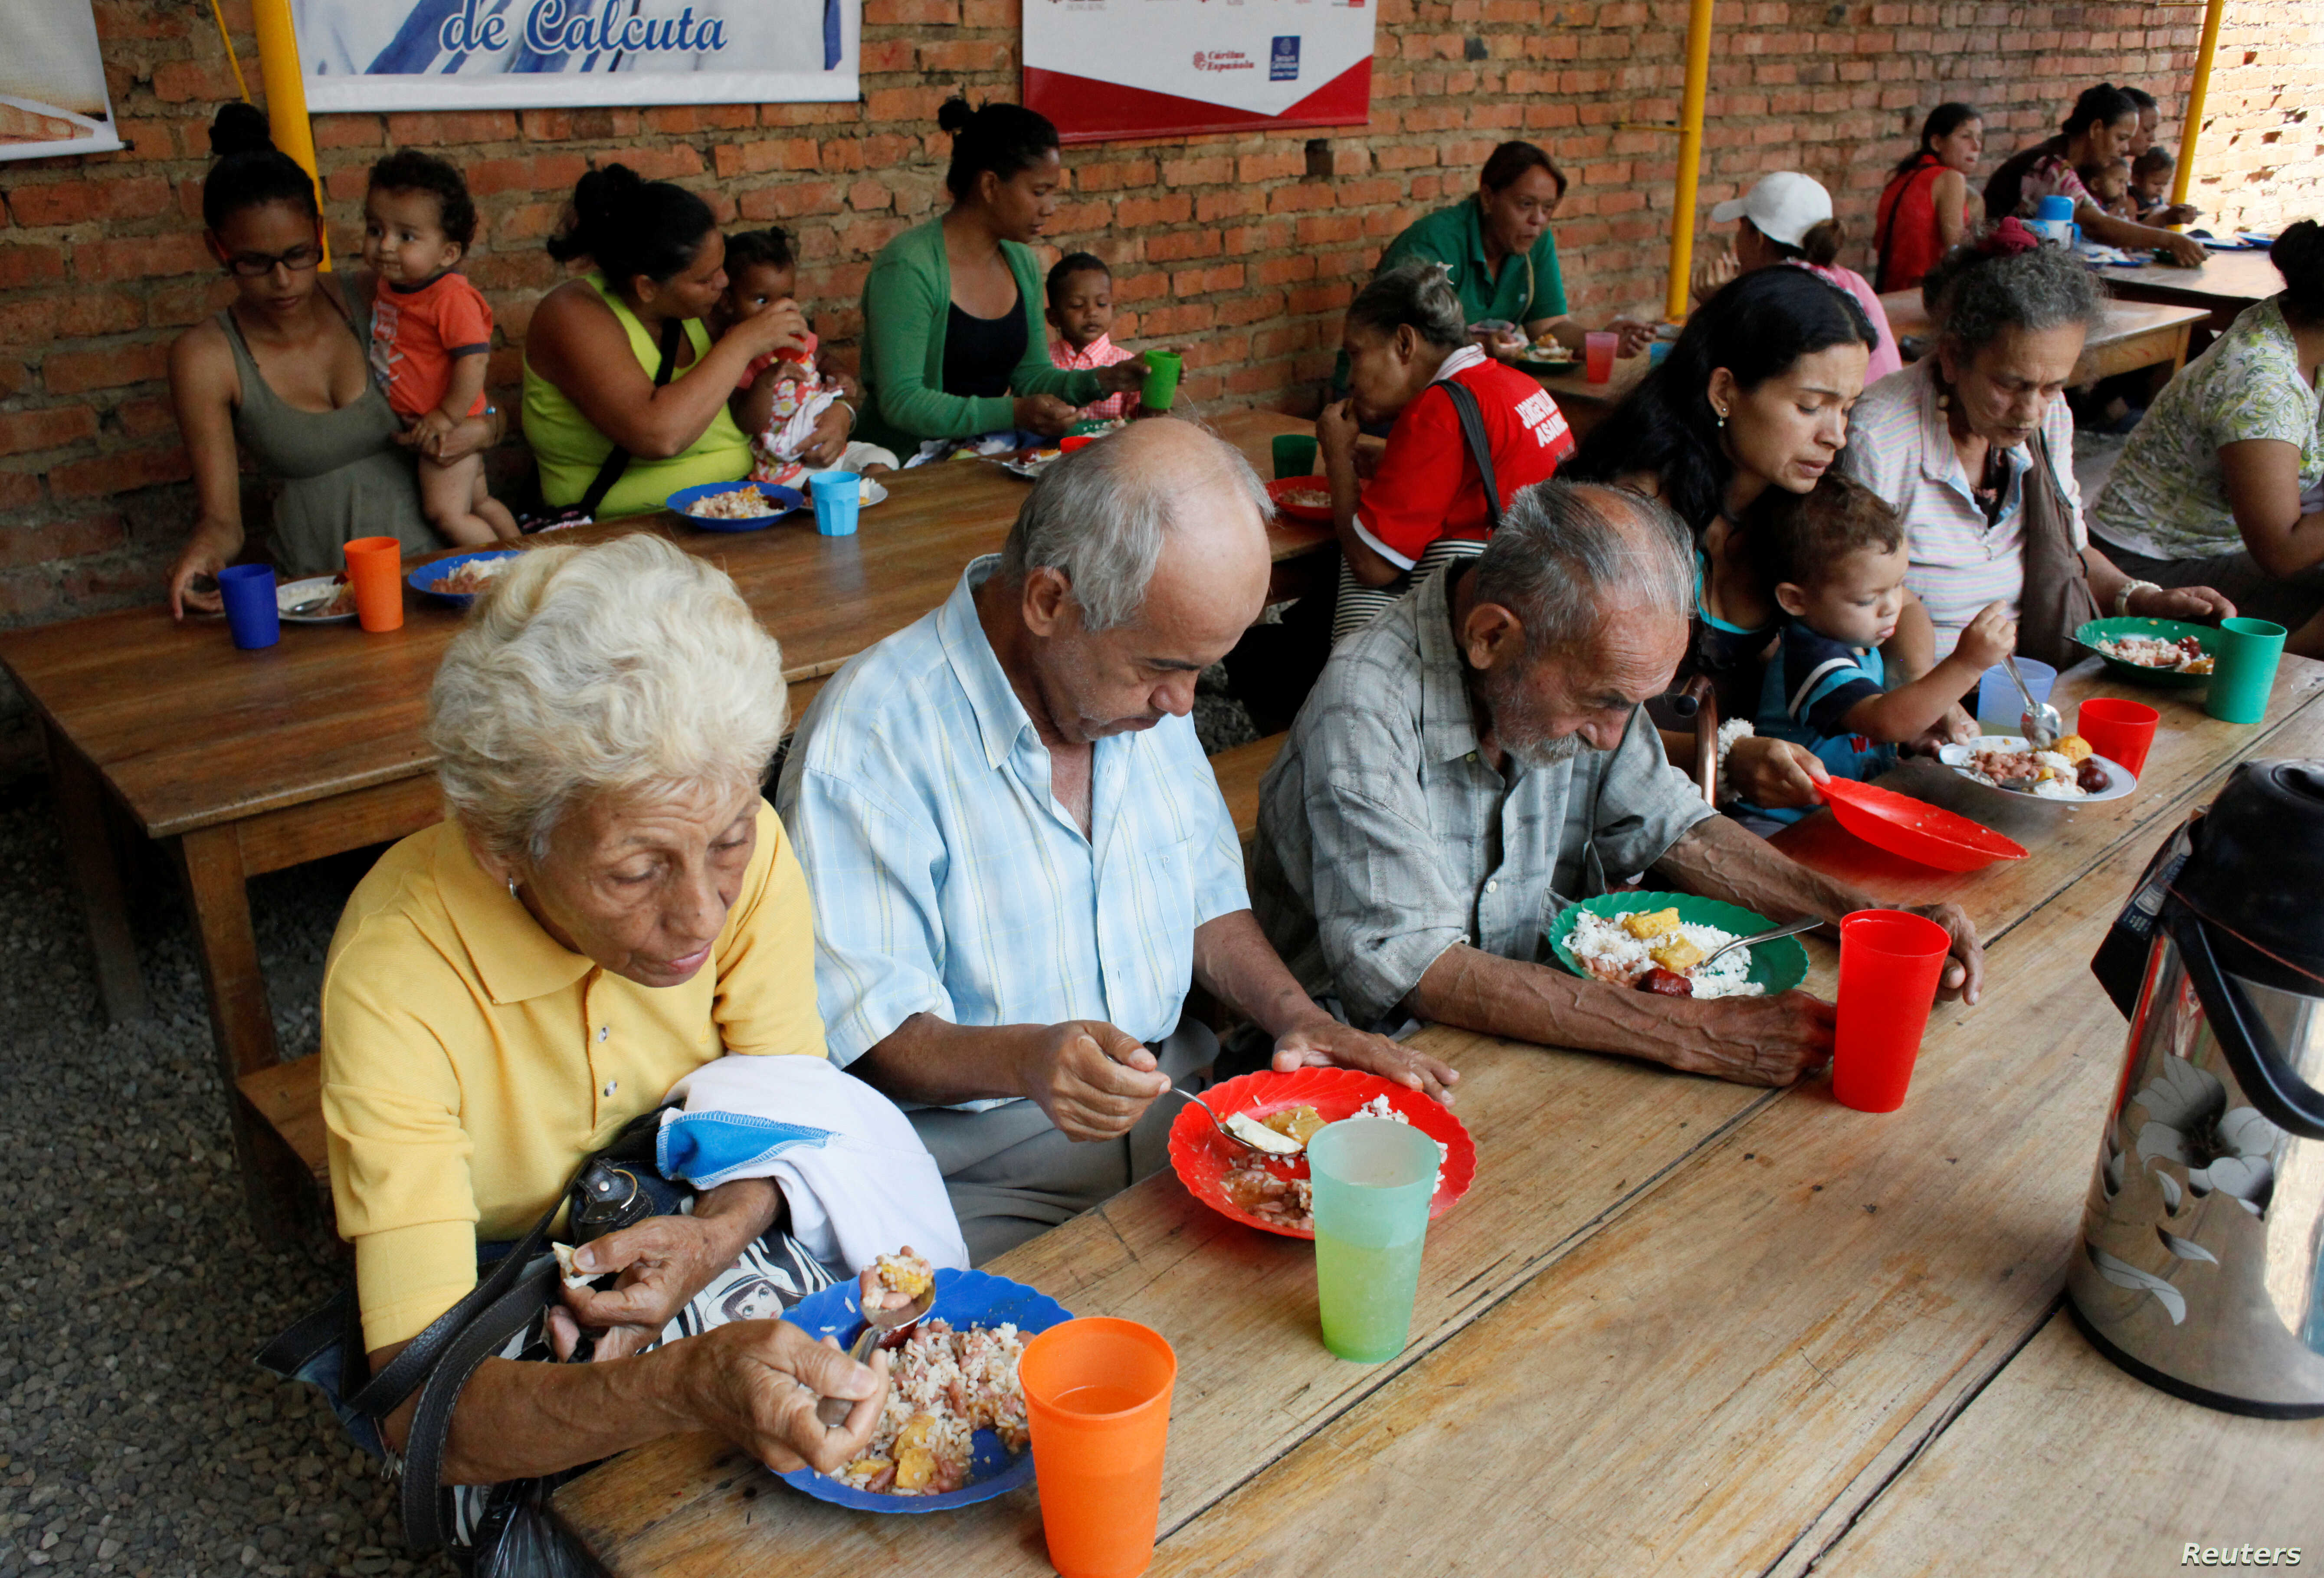 Venezuelans have a meal at a dining facility organized by the Catholic church, in Cucuta, Colombia, Feb. 21, 2018.